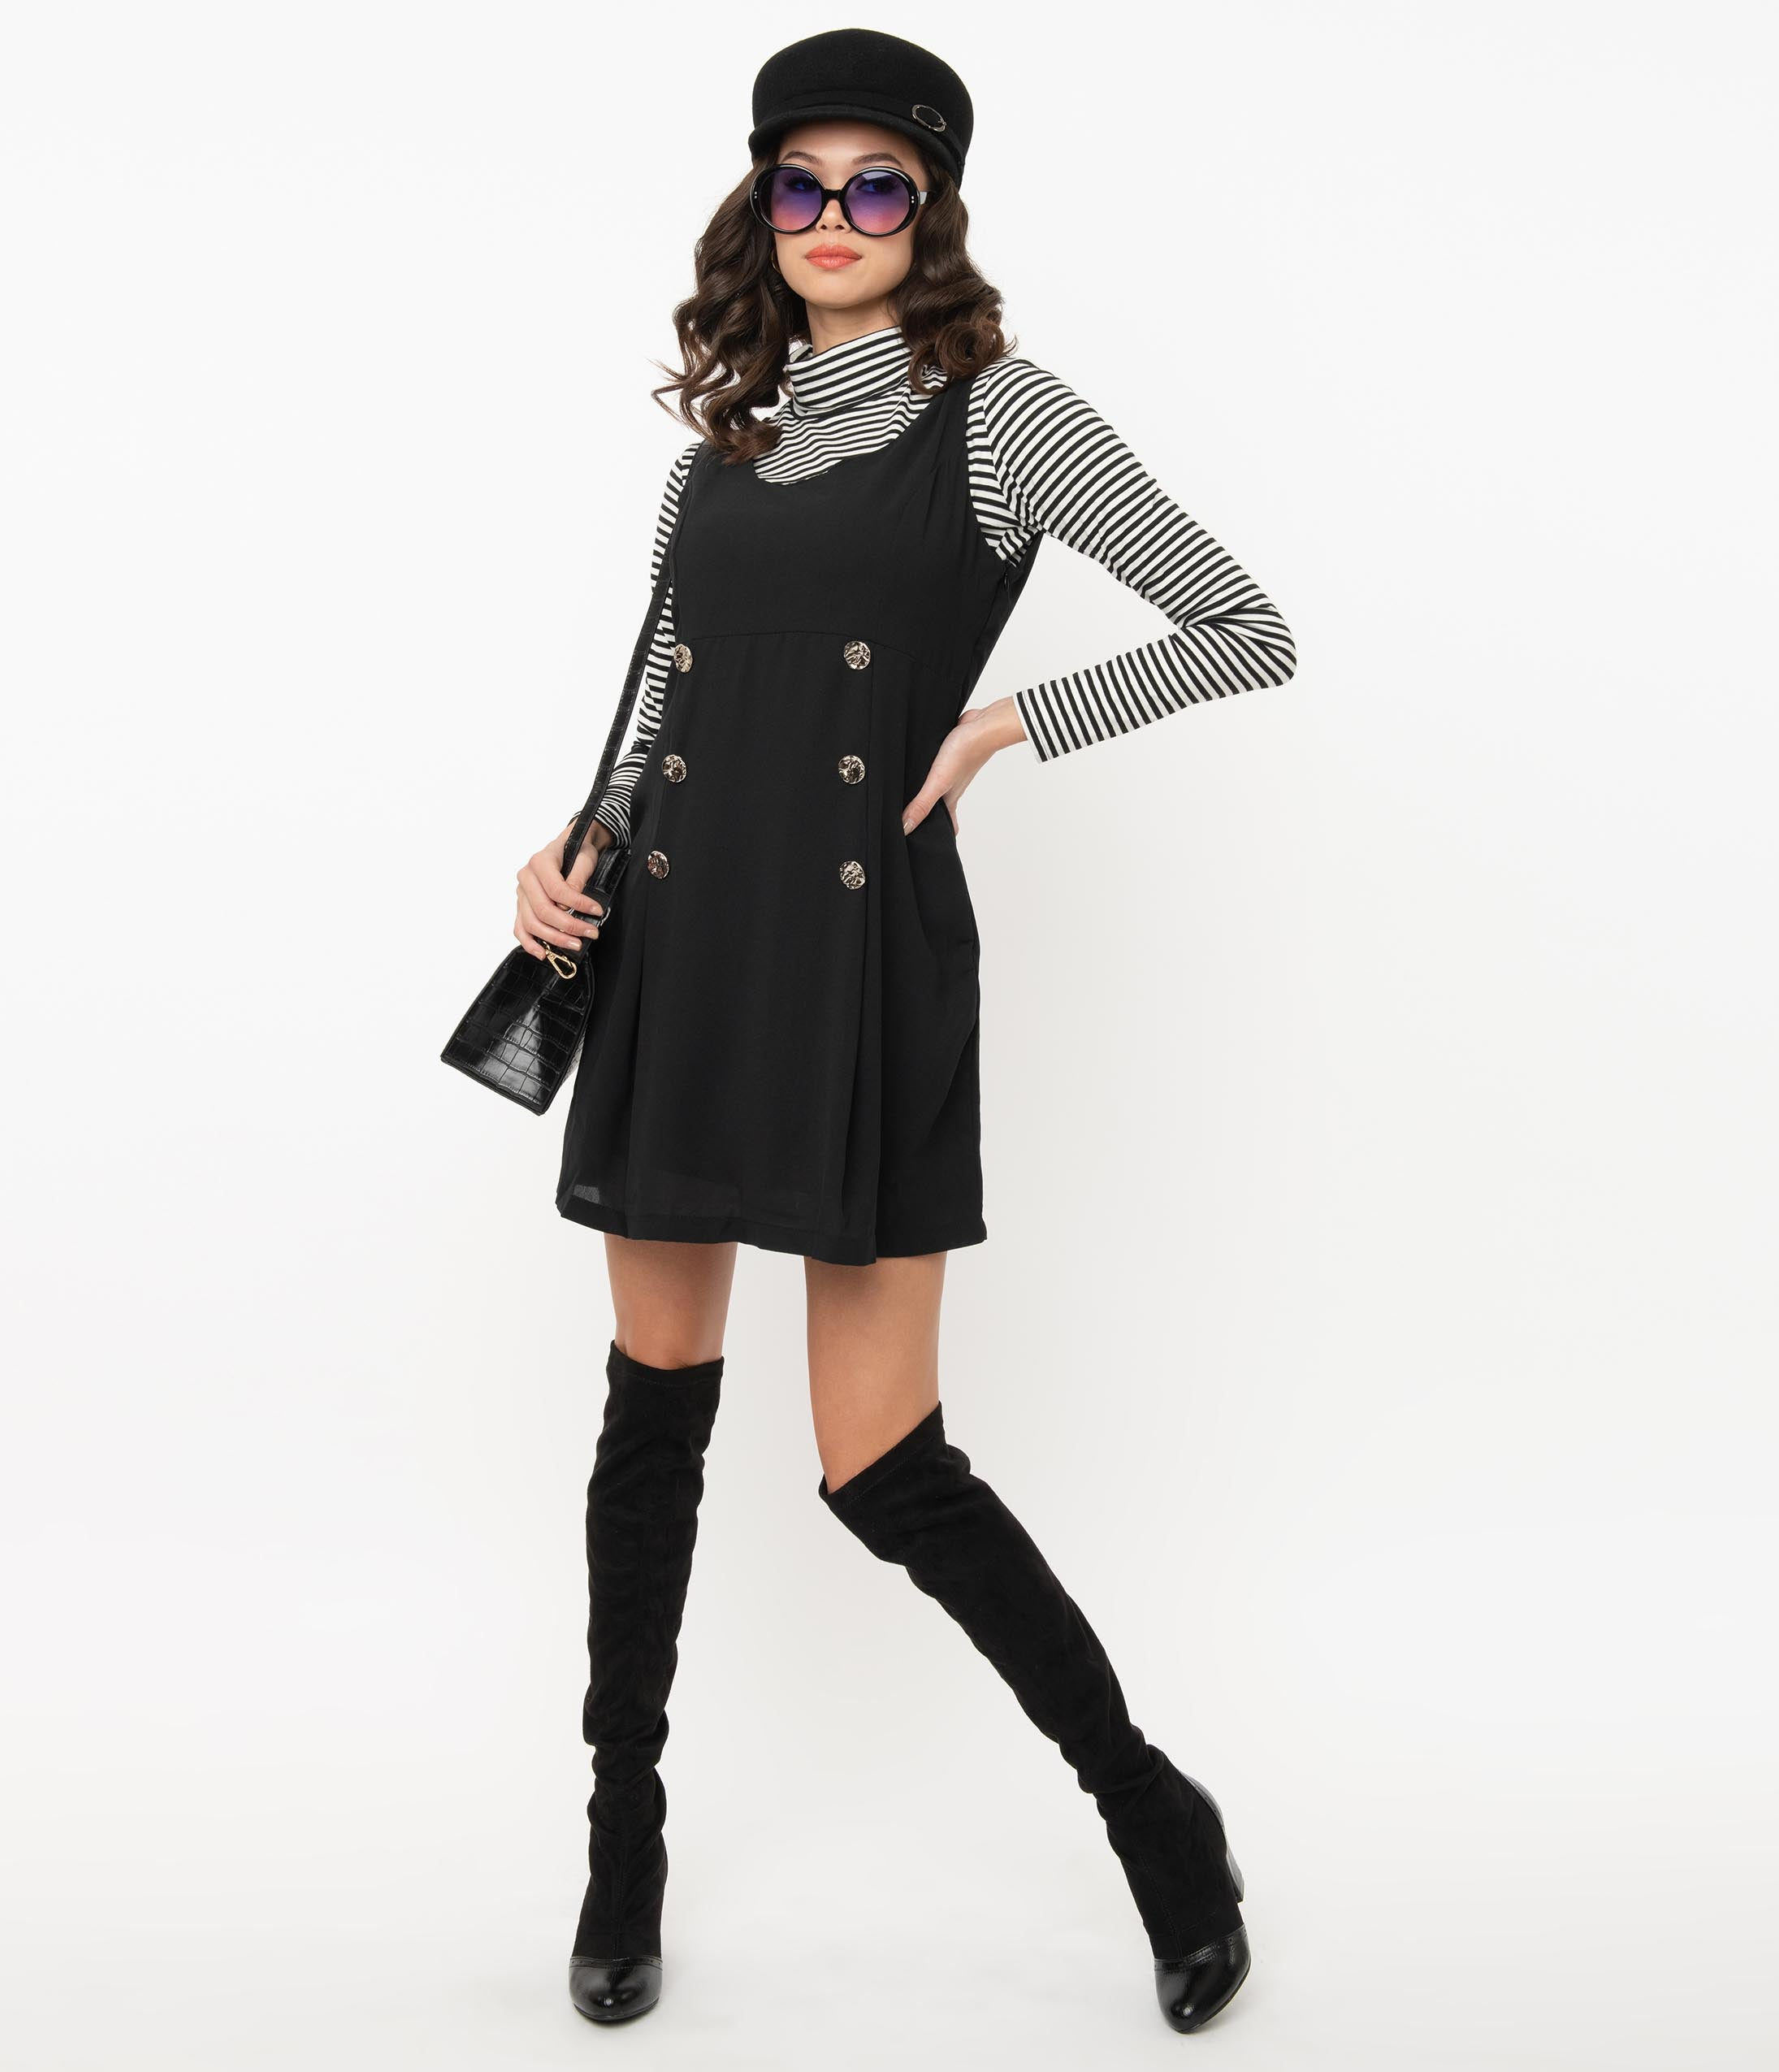 Shop Queen's Gambit Outfits – 60s Clothes Retro Style Black Jumper Dress $58.00 AT vintagedancer.com